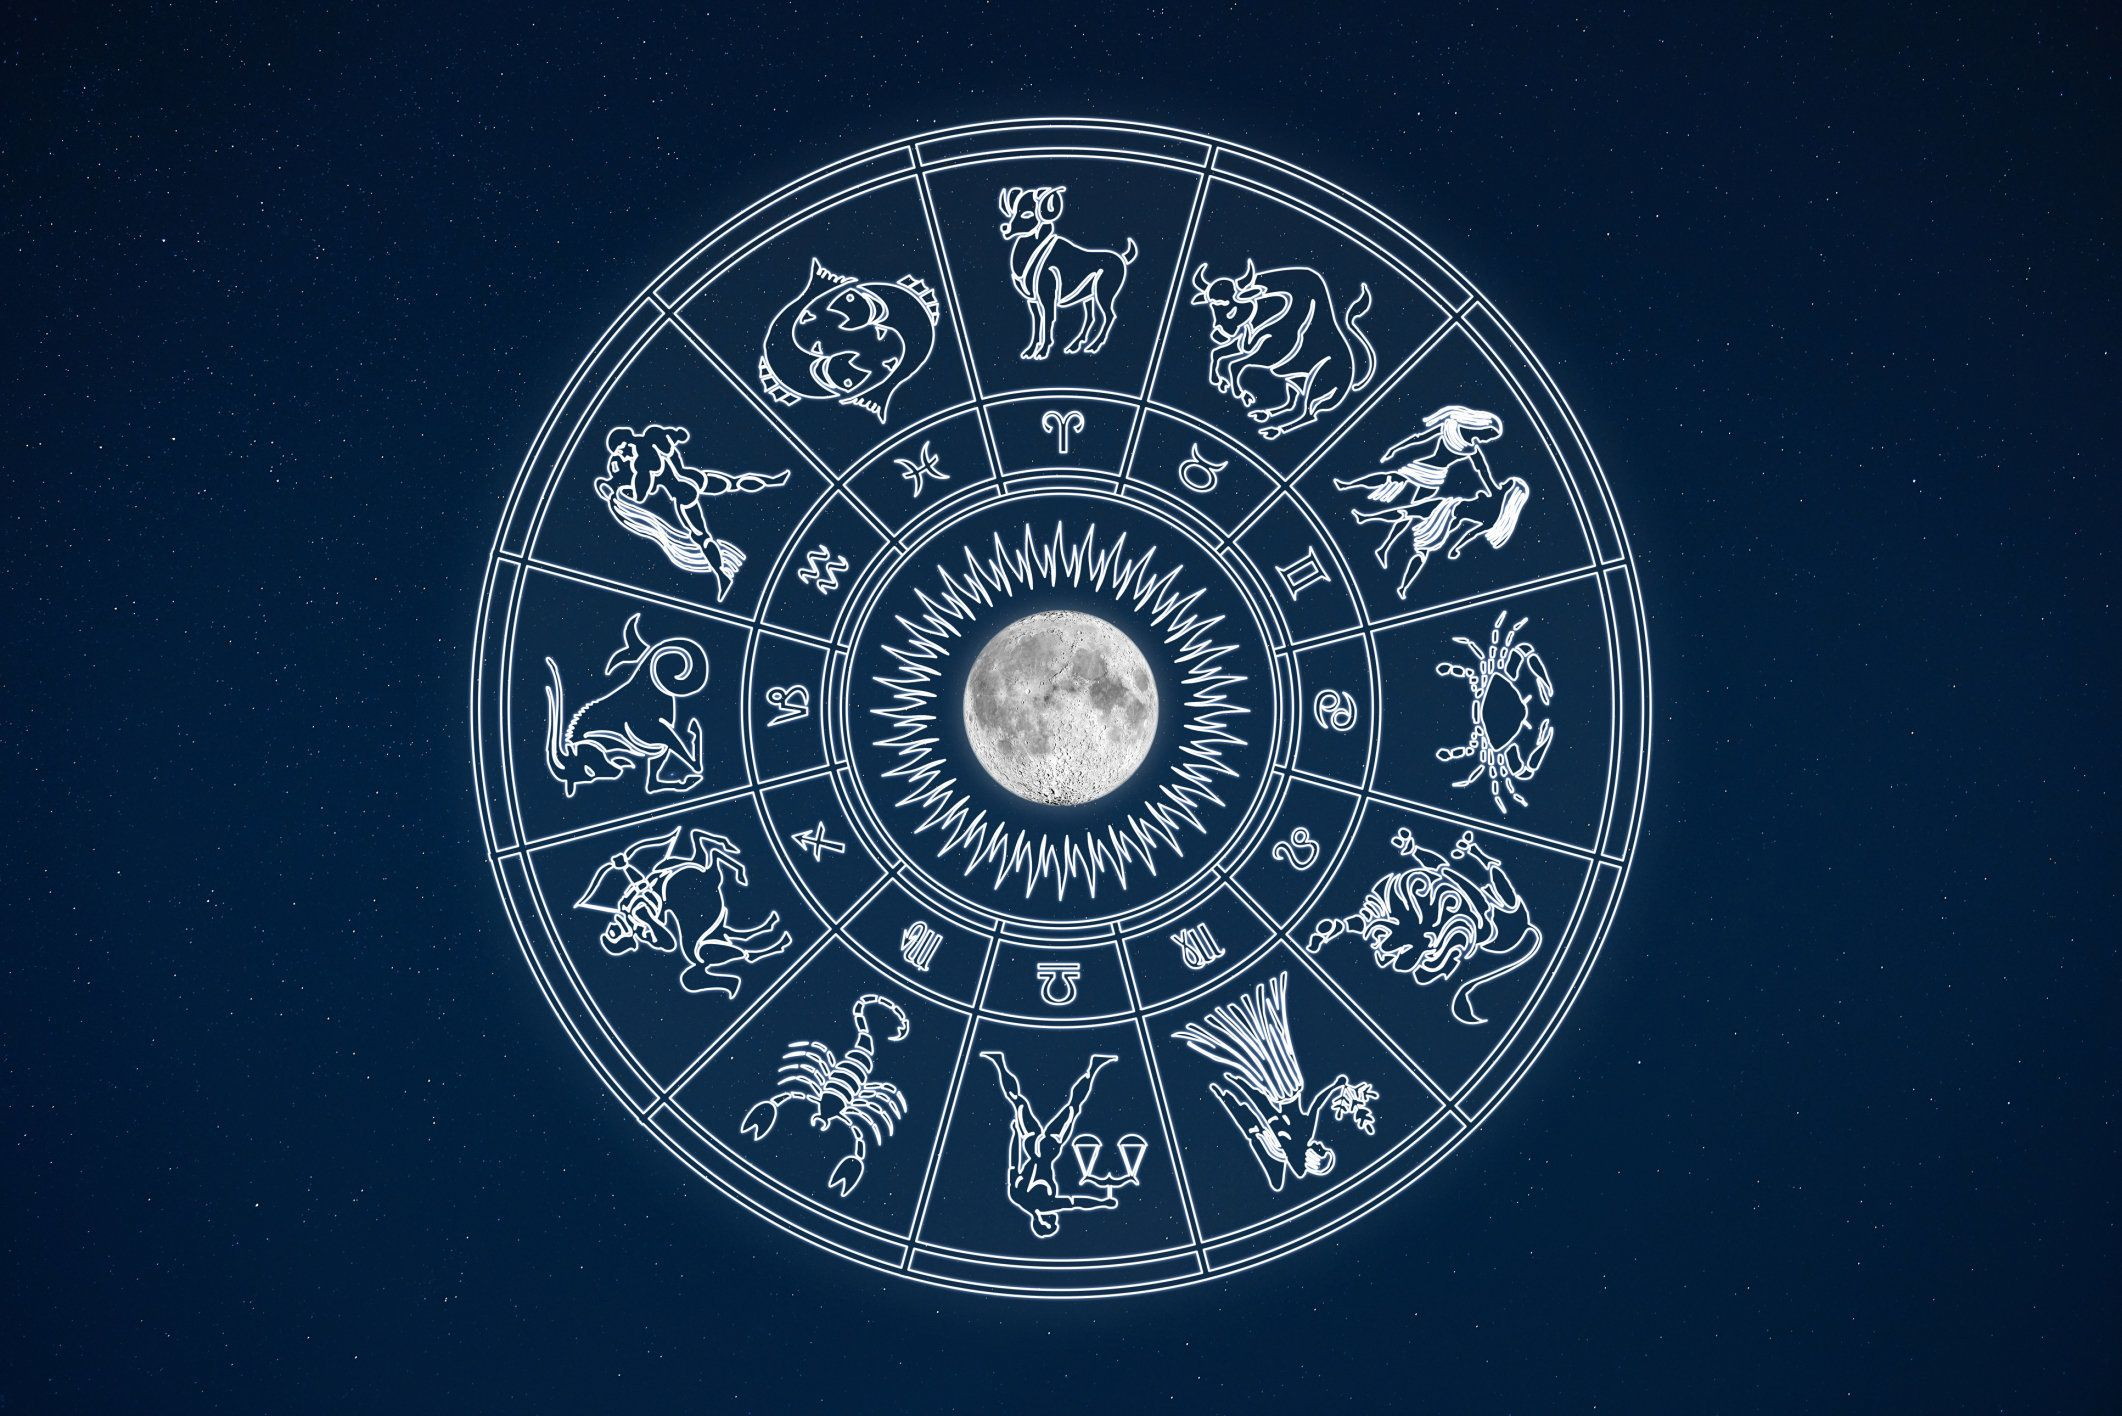 Why Some People Believe In Horoscopes